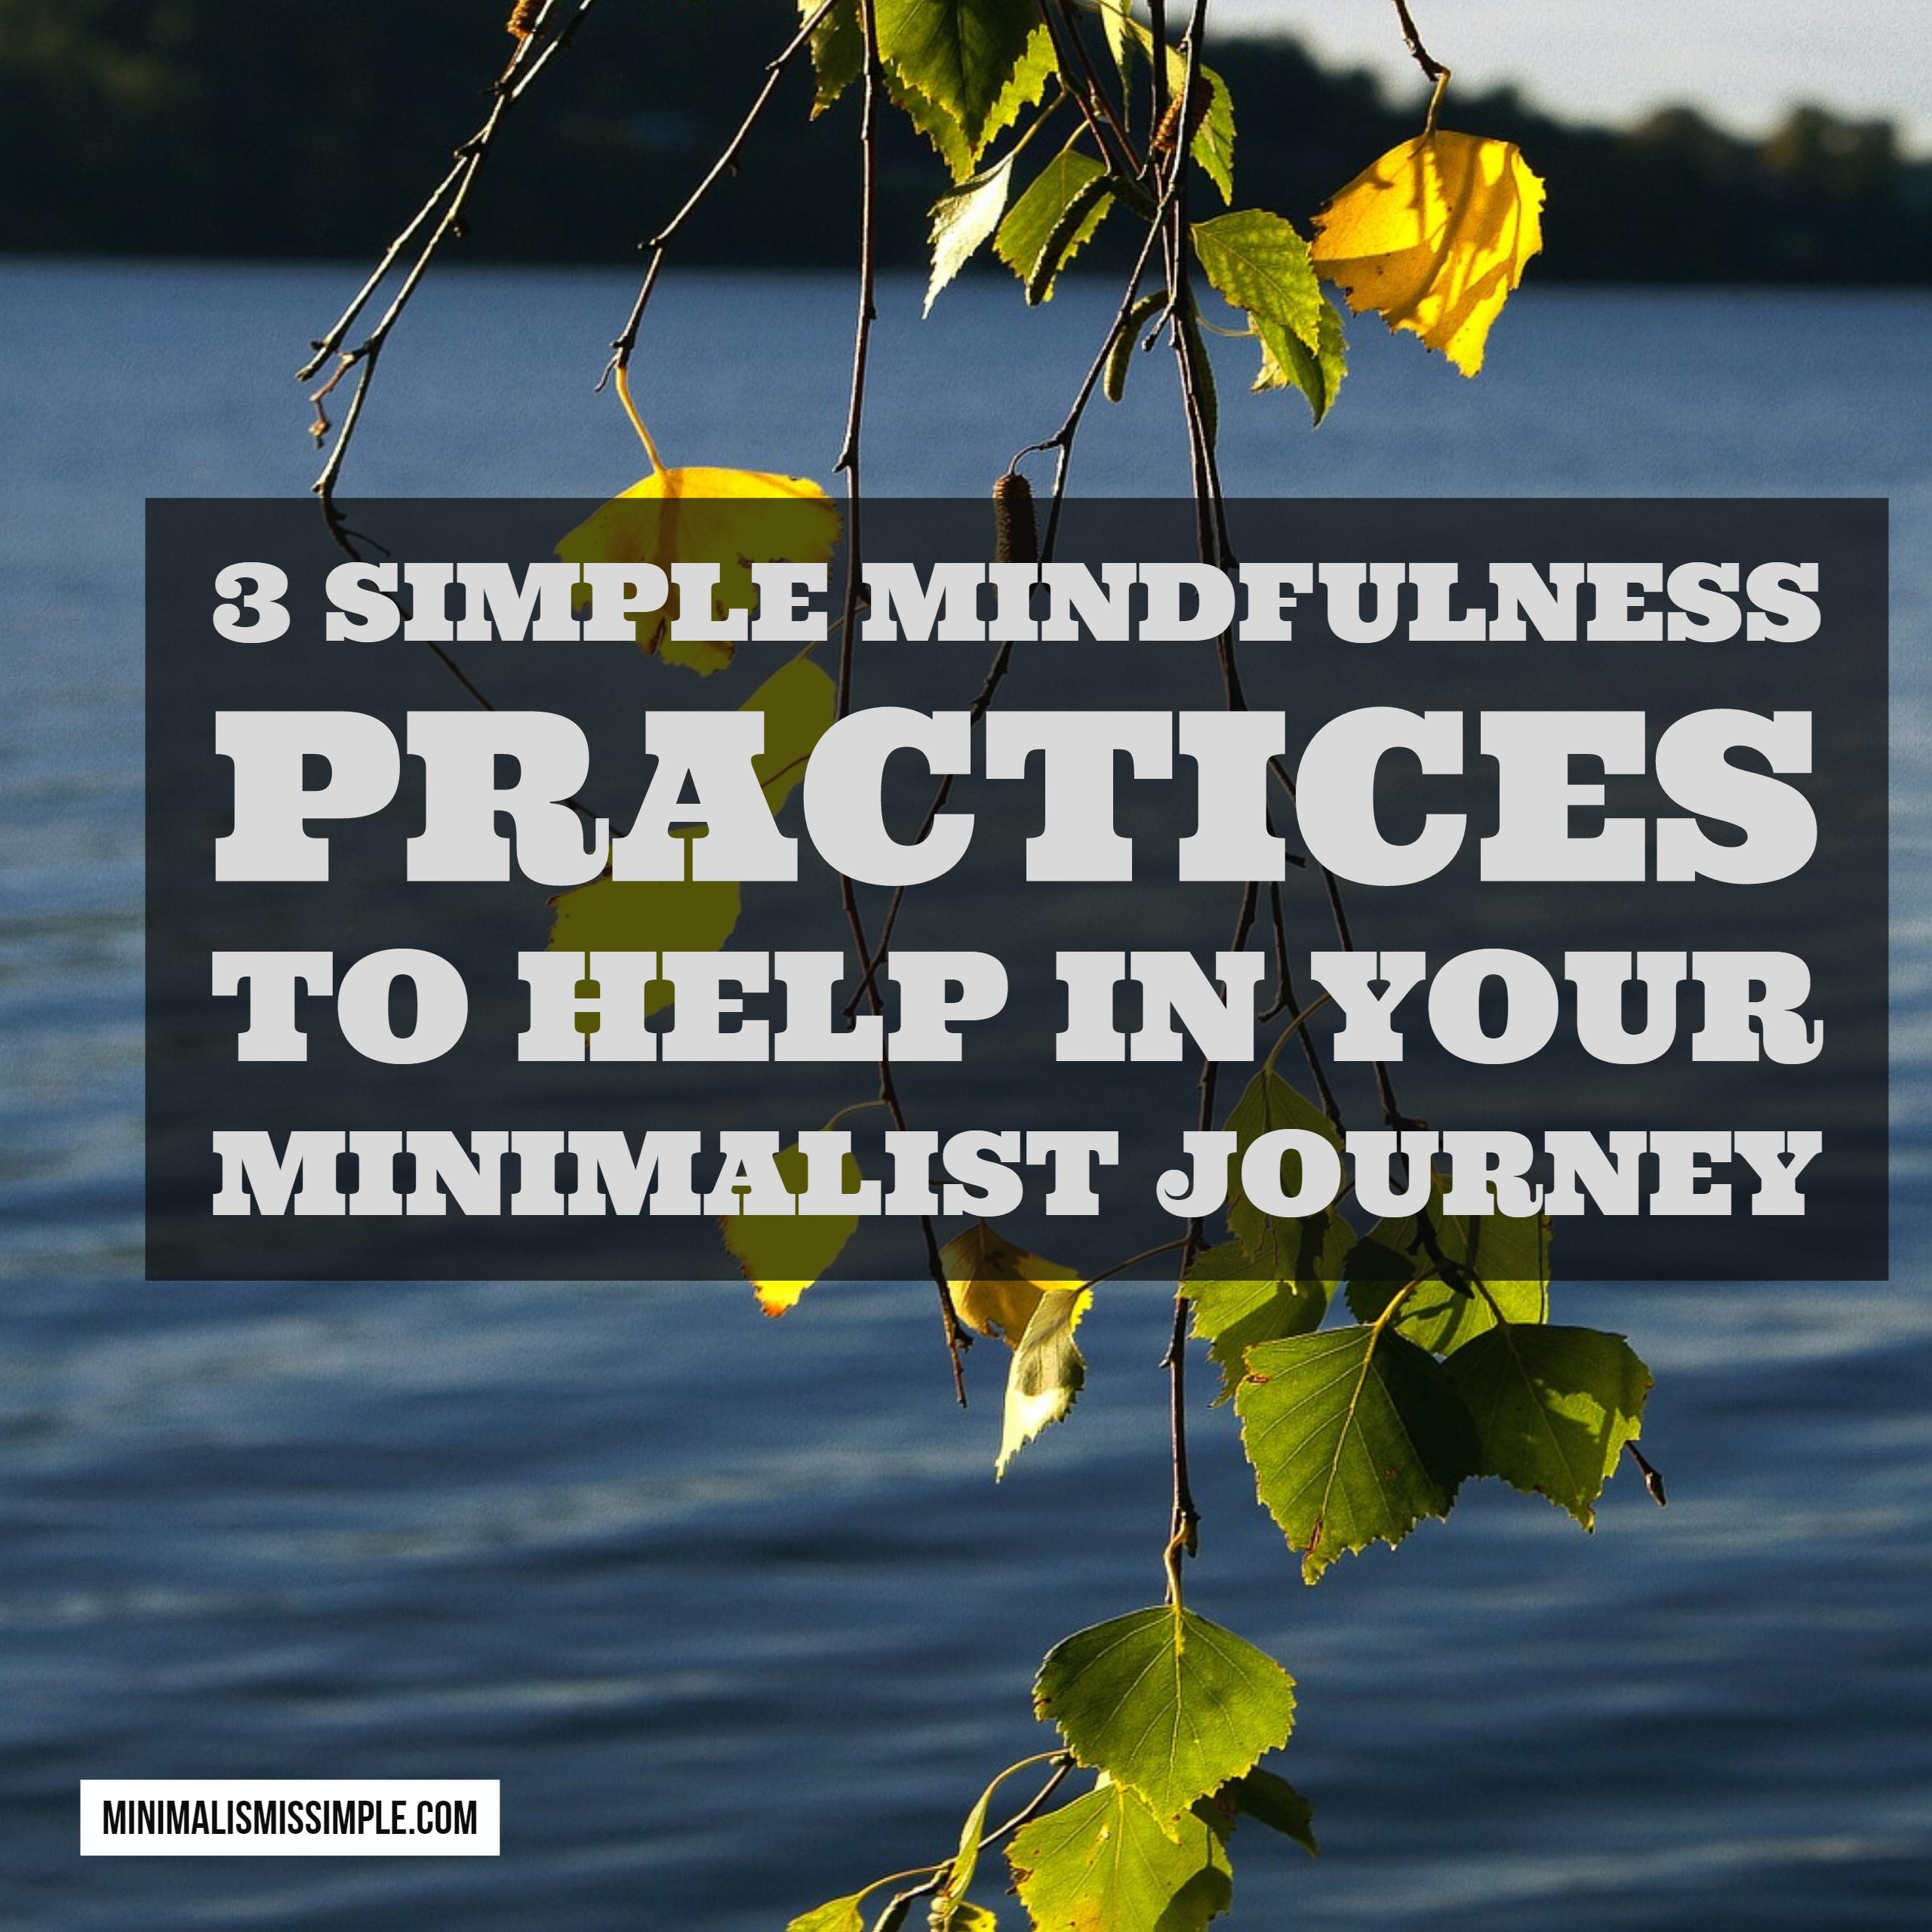 3 simple mindfulness practices minimalismissimple.com